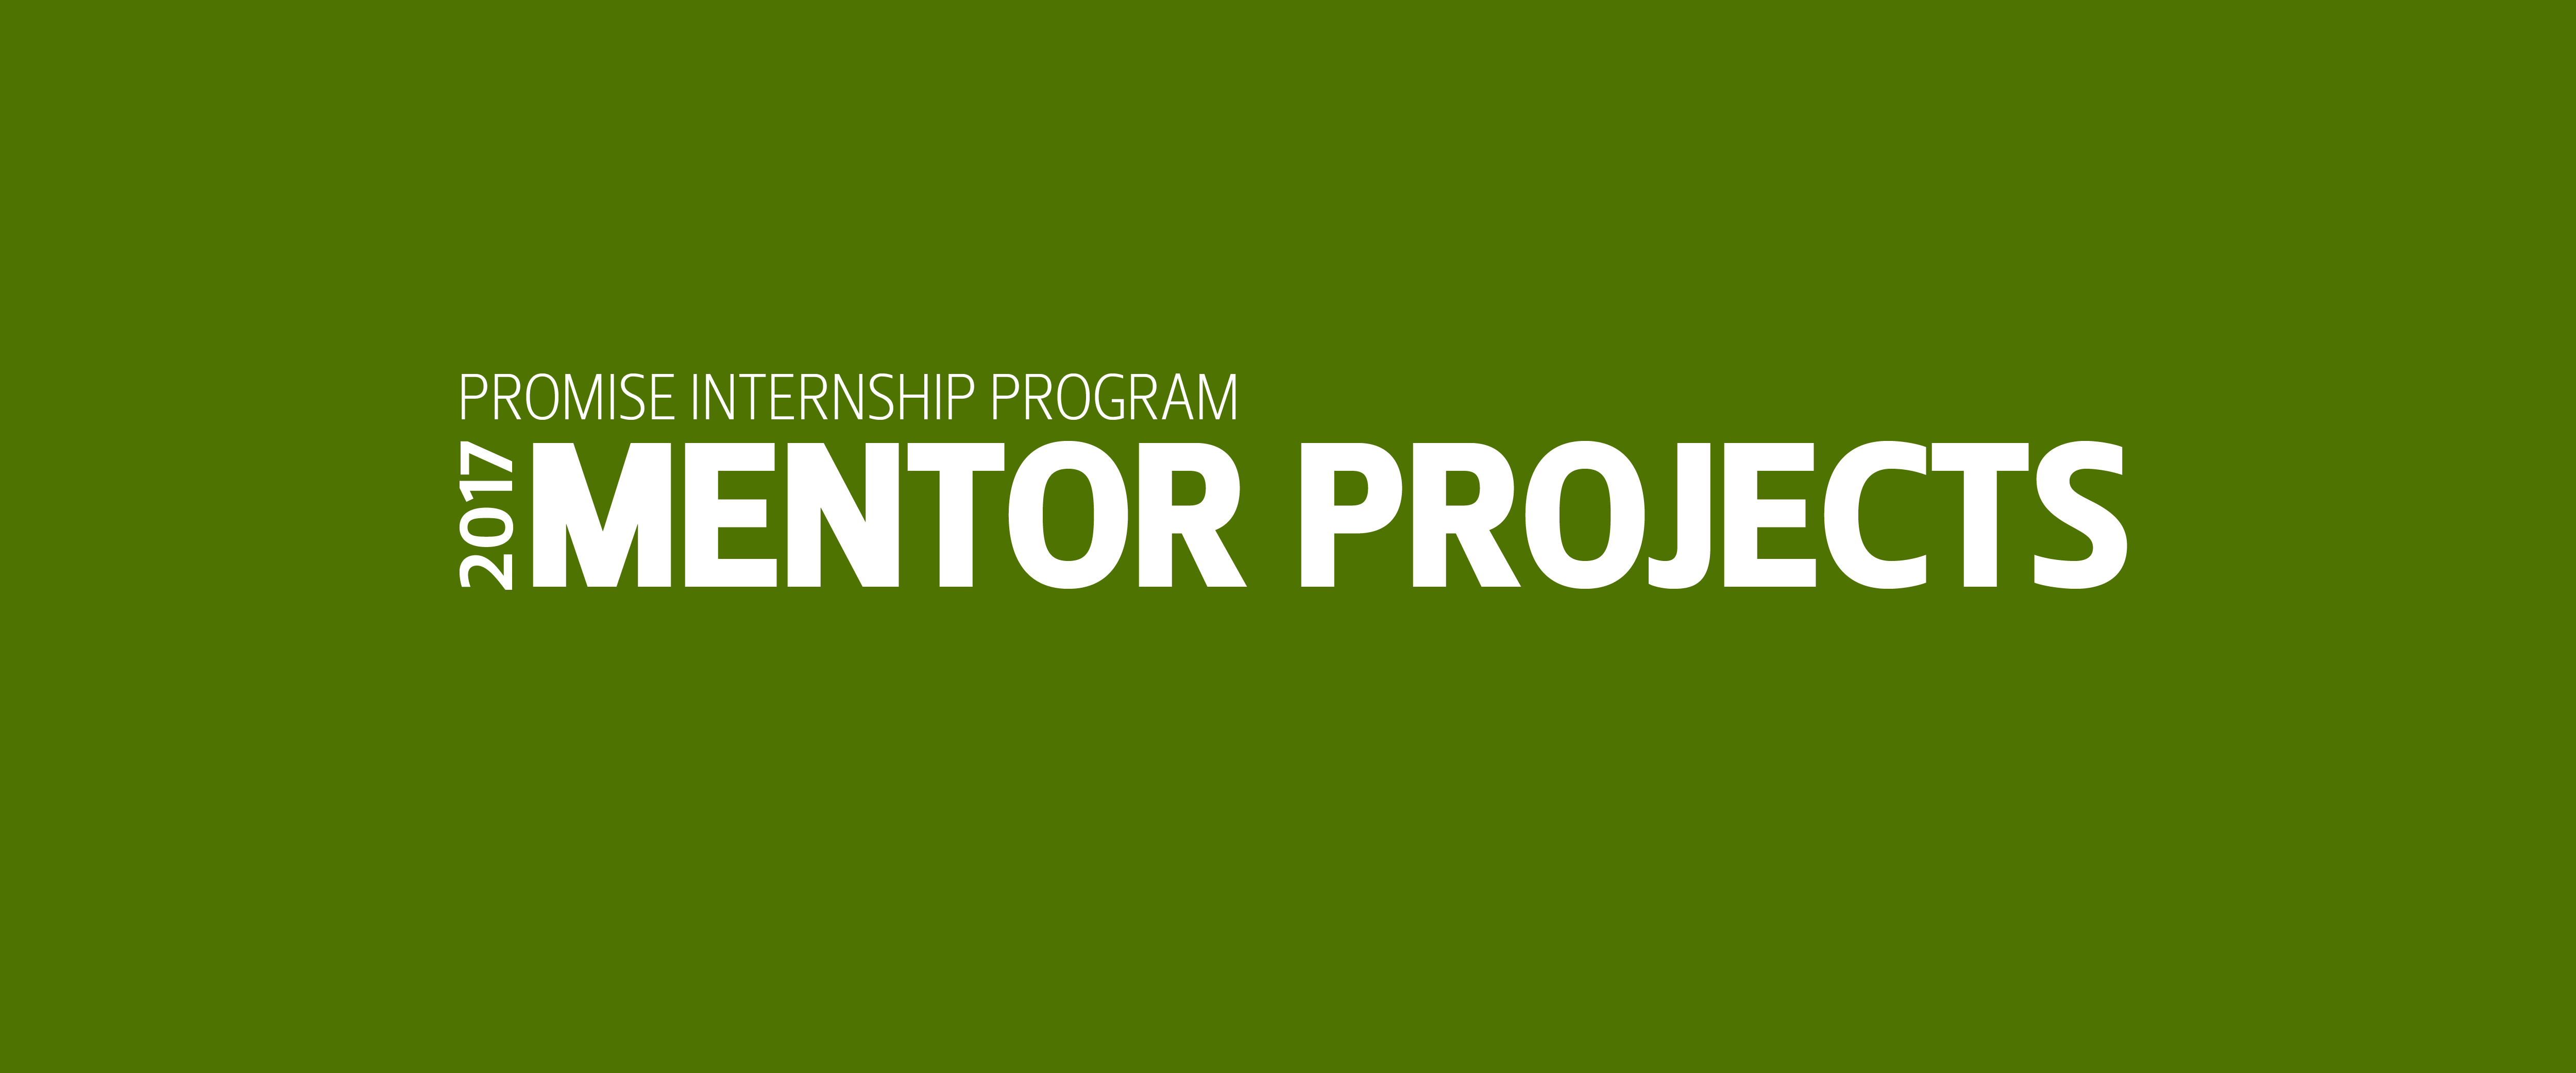 PROMISE Internship program mentor projects 2017